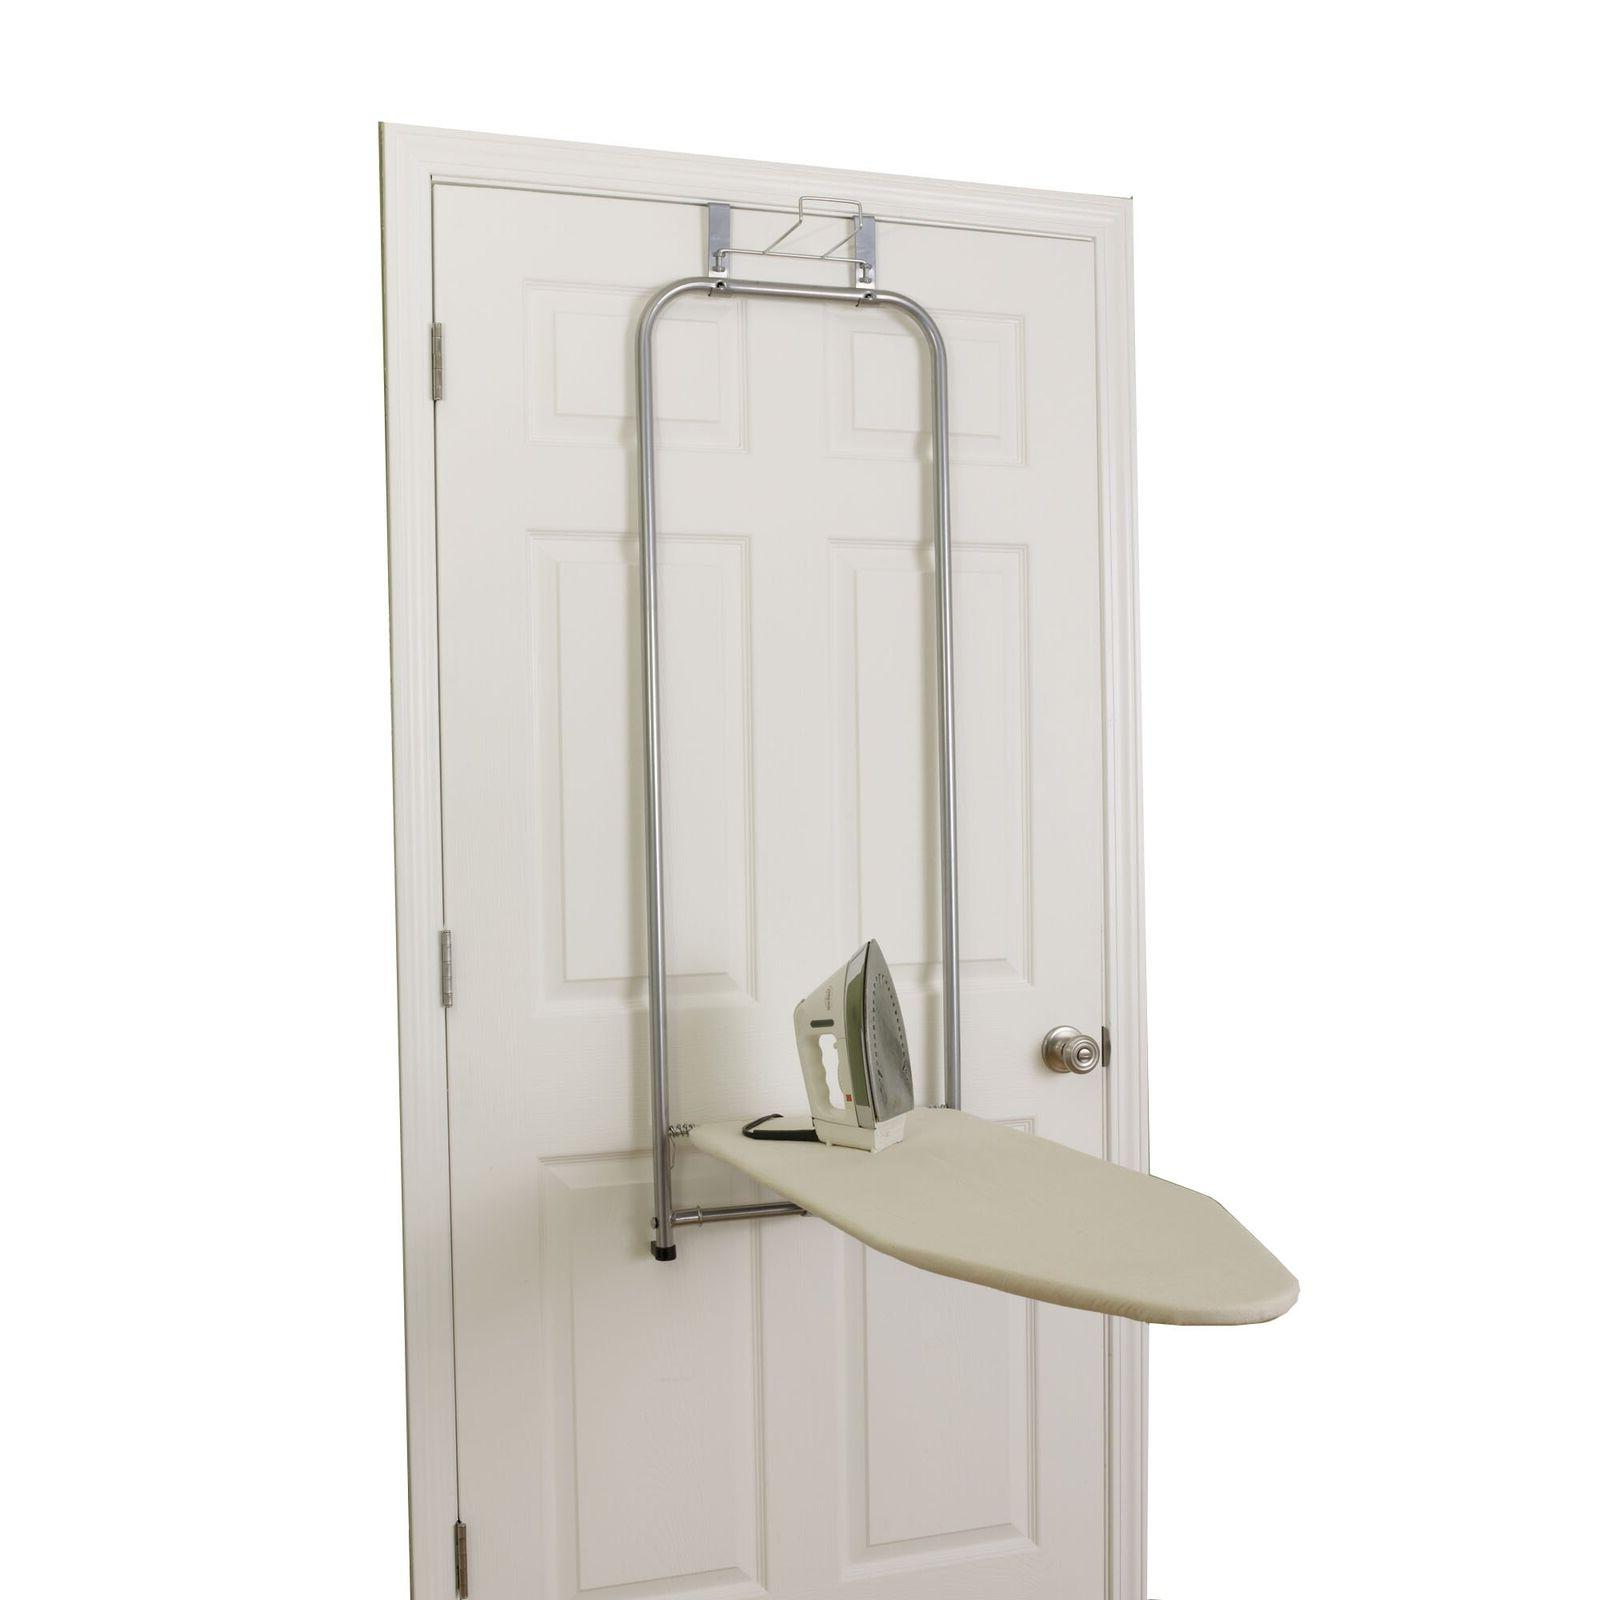 144222 over the door small ironing board